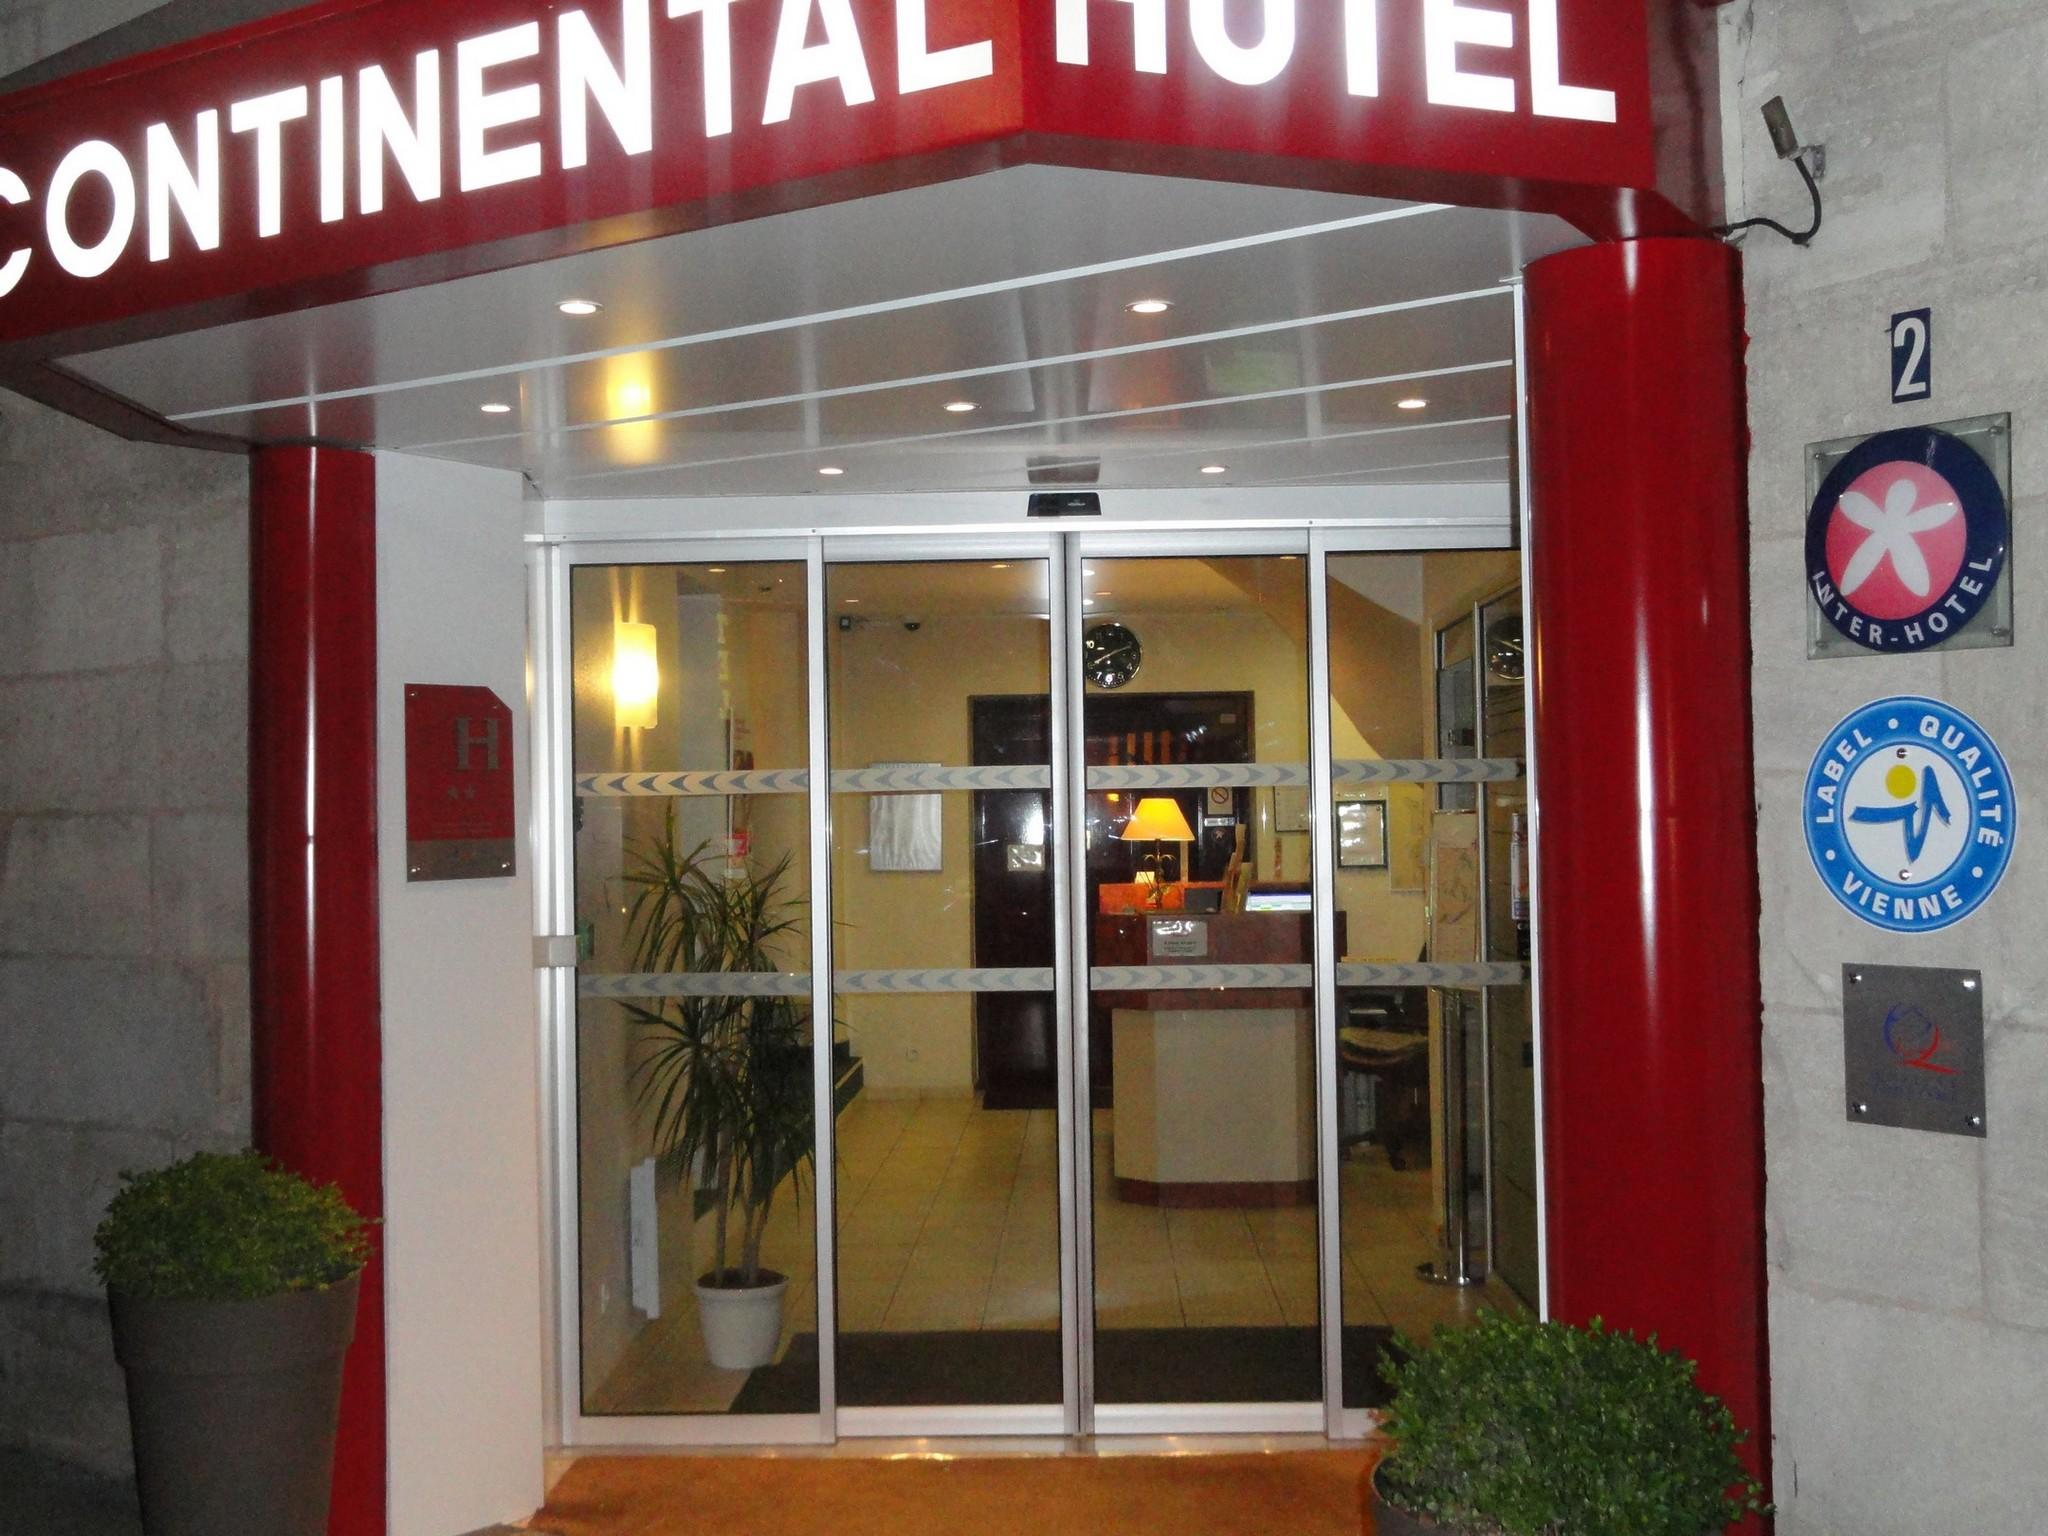 Inter-Hotel Continental Poitiers